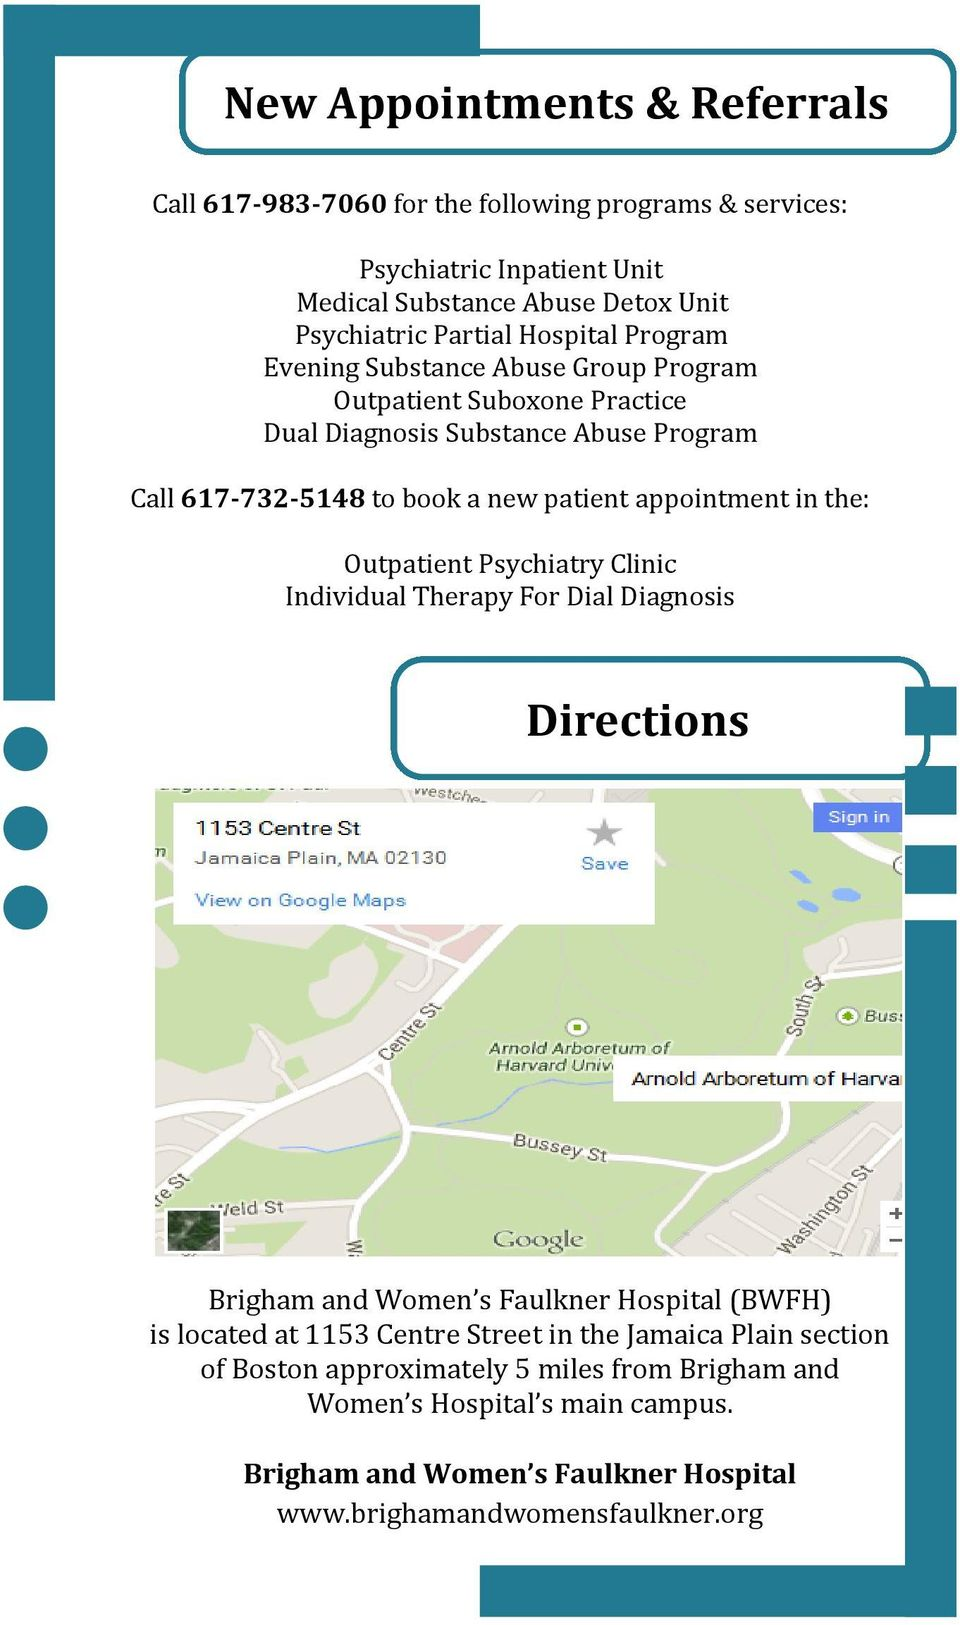 Outpatient Psychiatry Clinic Individual Therapy For Dial Diagnosis Directions Brigham and Women s Faulkner Hospital (BWFH) is located at 1153 Centre Street in the